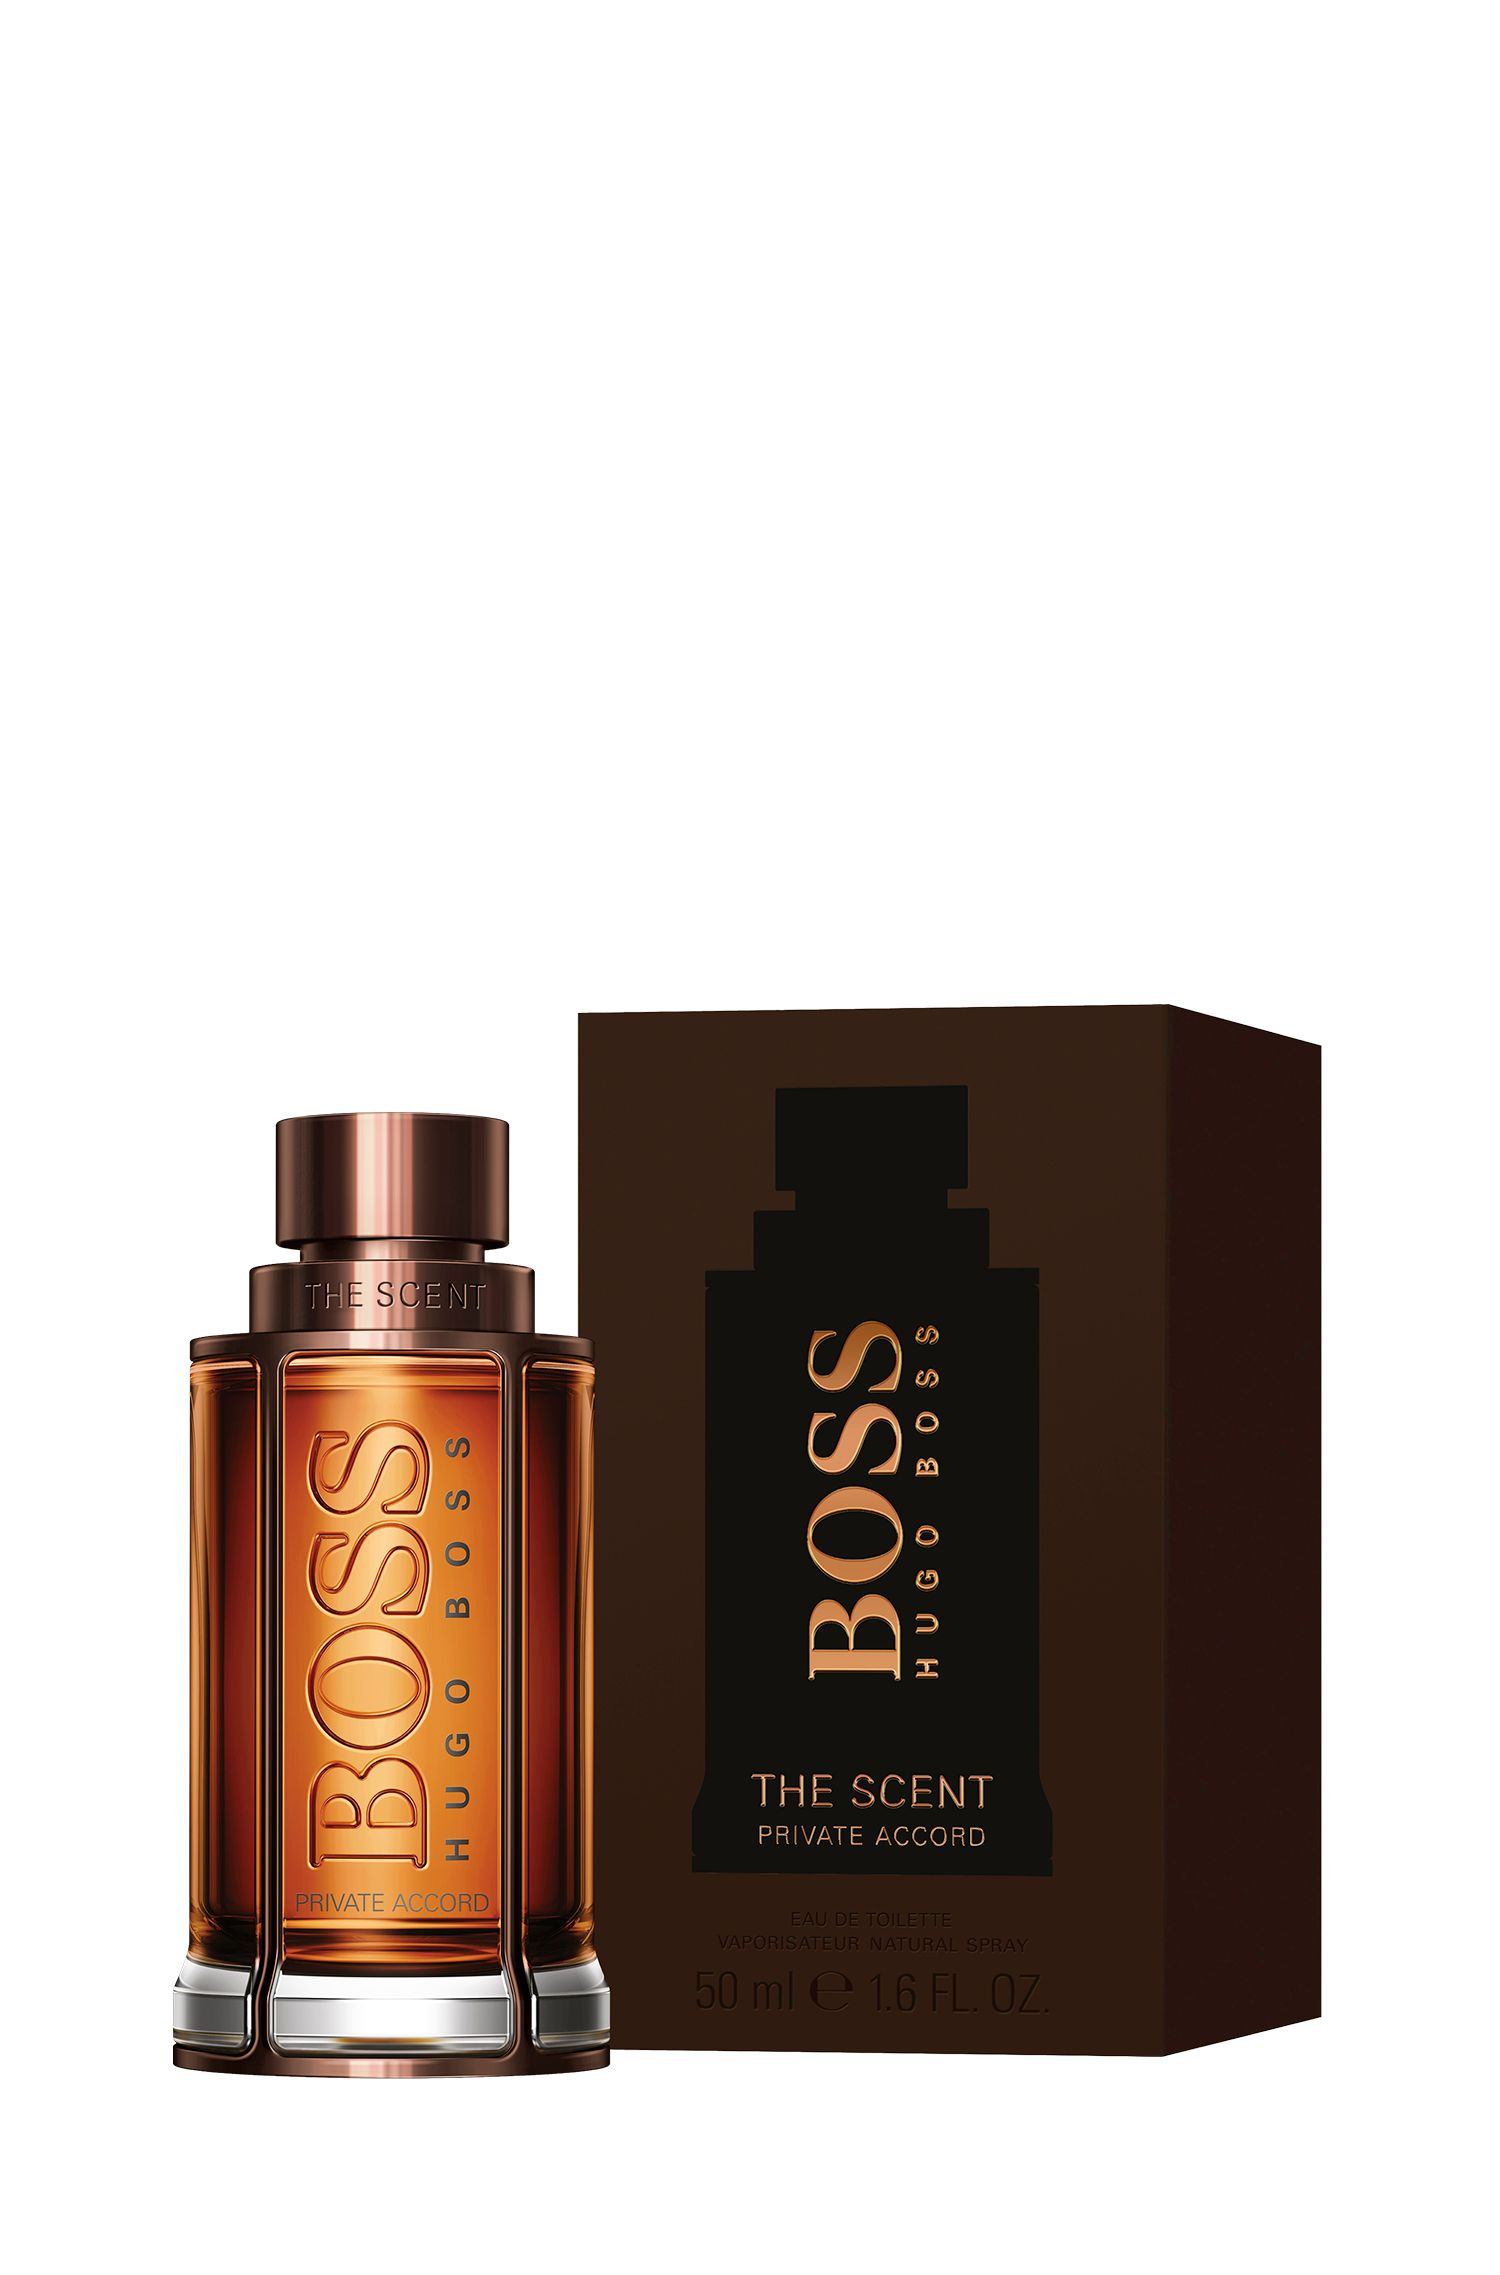 BOSS The Scent Private Accord for Him 50ml eau de toilette, Assorted-Pre-Pack